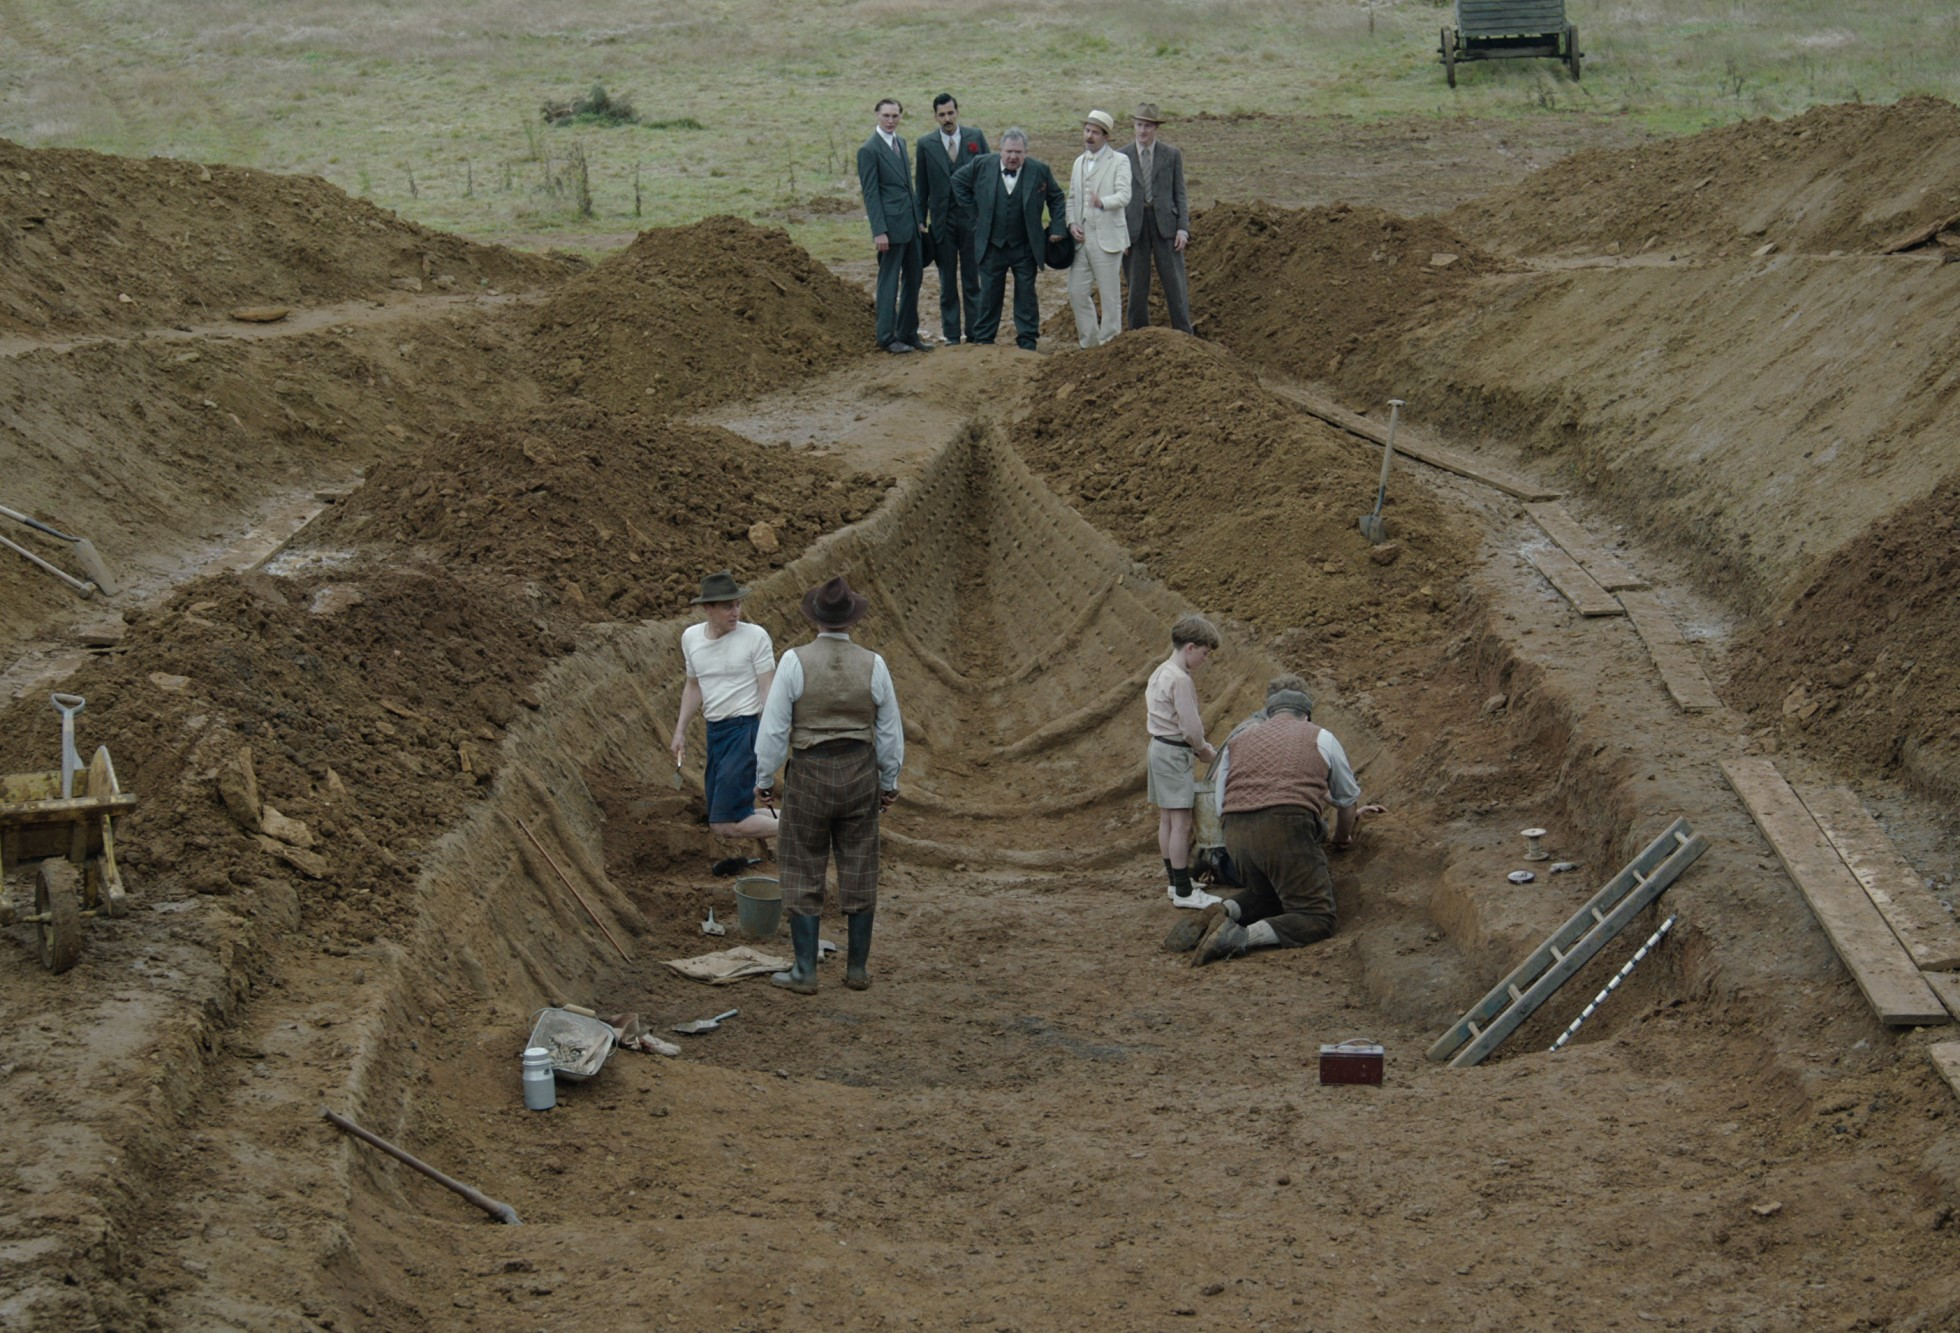 Three men and a child work in the trench, They are watched by 5 men, all wearing suits who stand at the end of the trench. There are piles of soil on the banks of the trench.